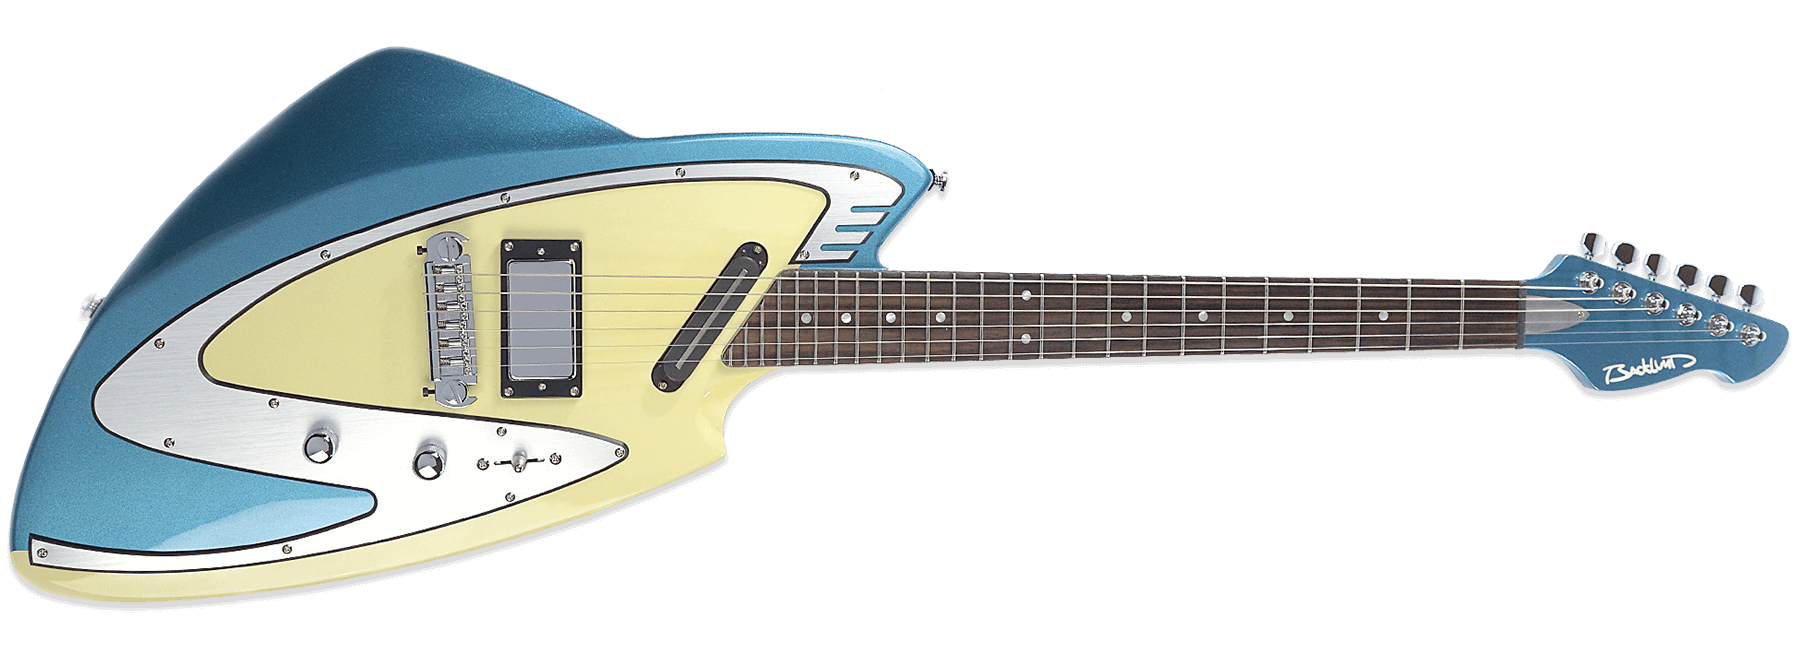 Backlund 100 Metallic Blue